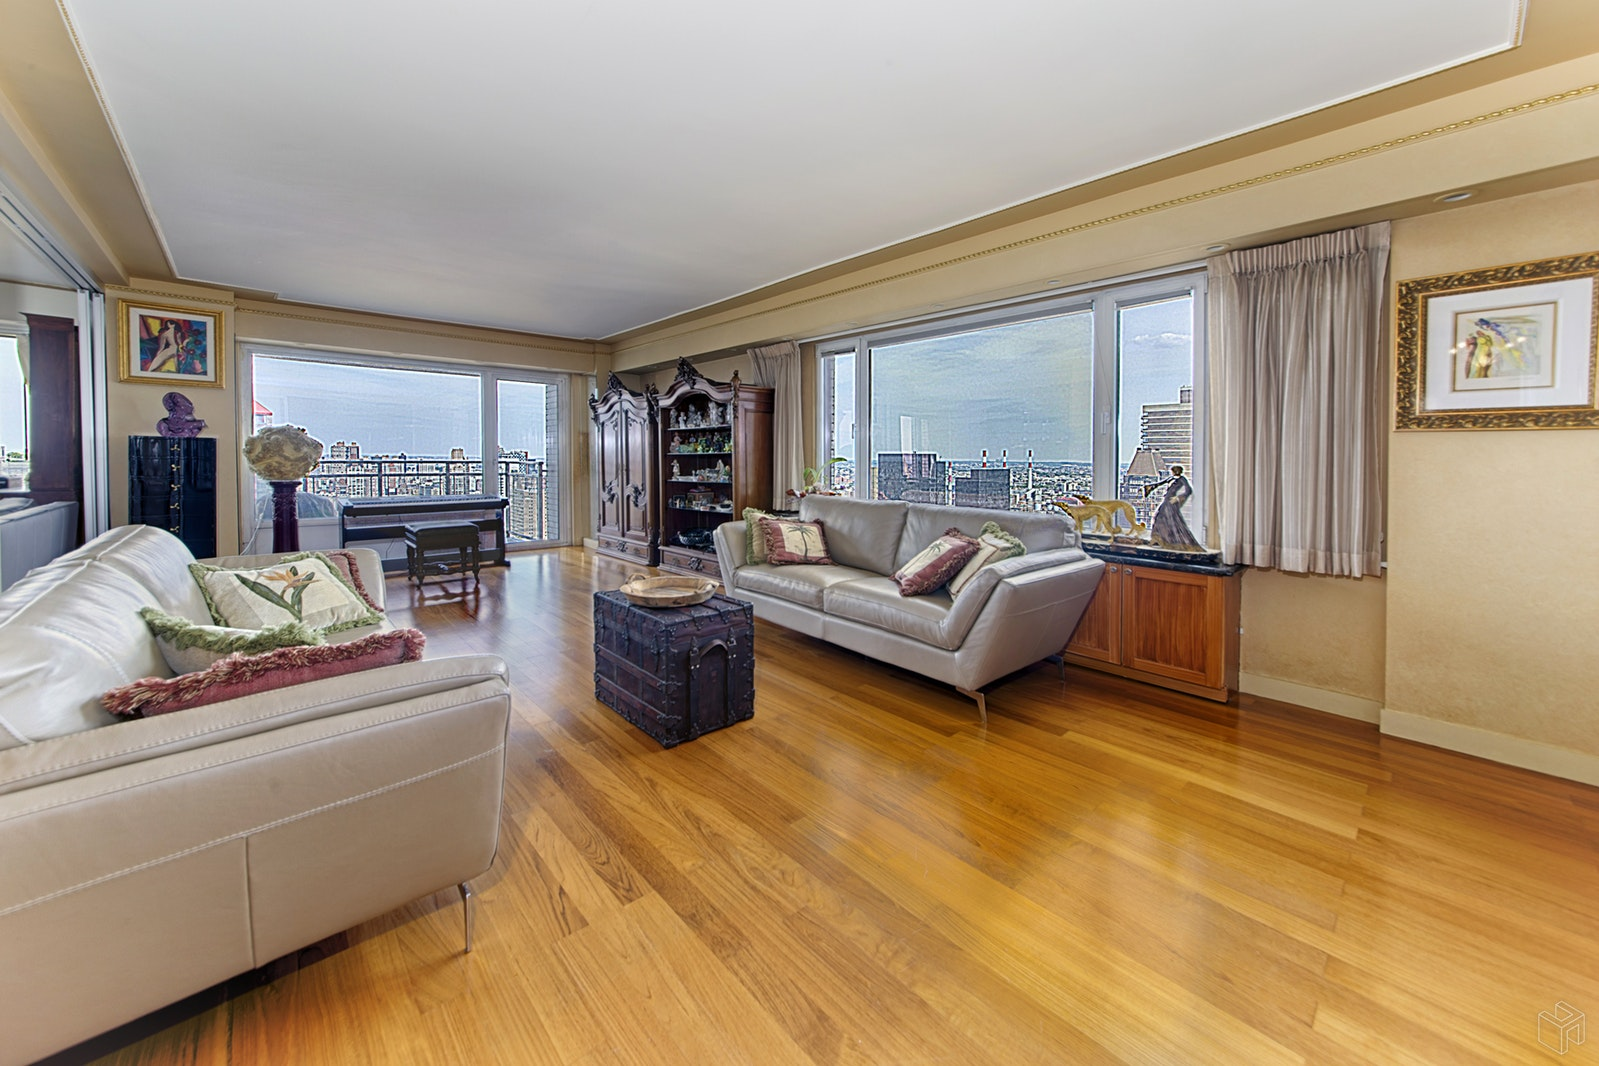 303 East 57th Street 40f, Midtown East, NYC, 10022, $1,100,000, Sold Property, Halstead Real Estate, Photo 1